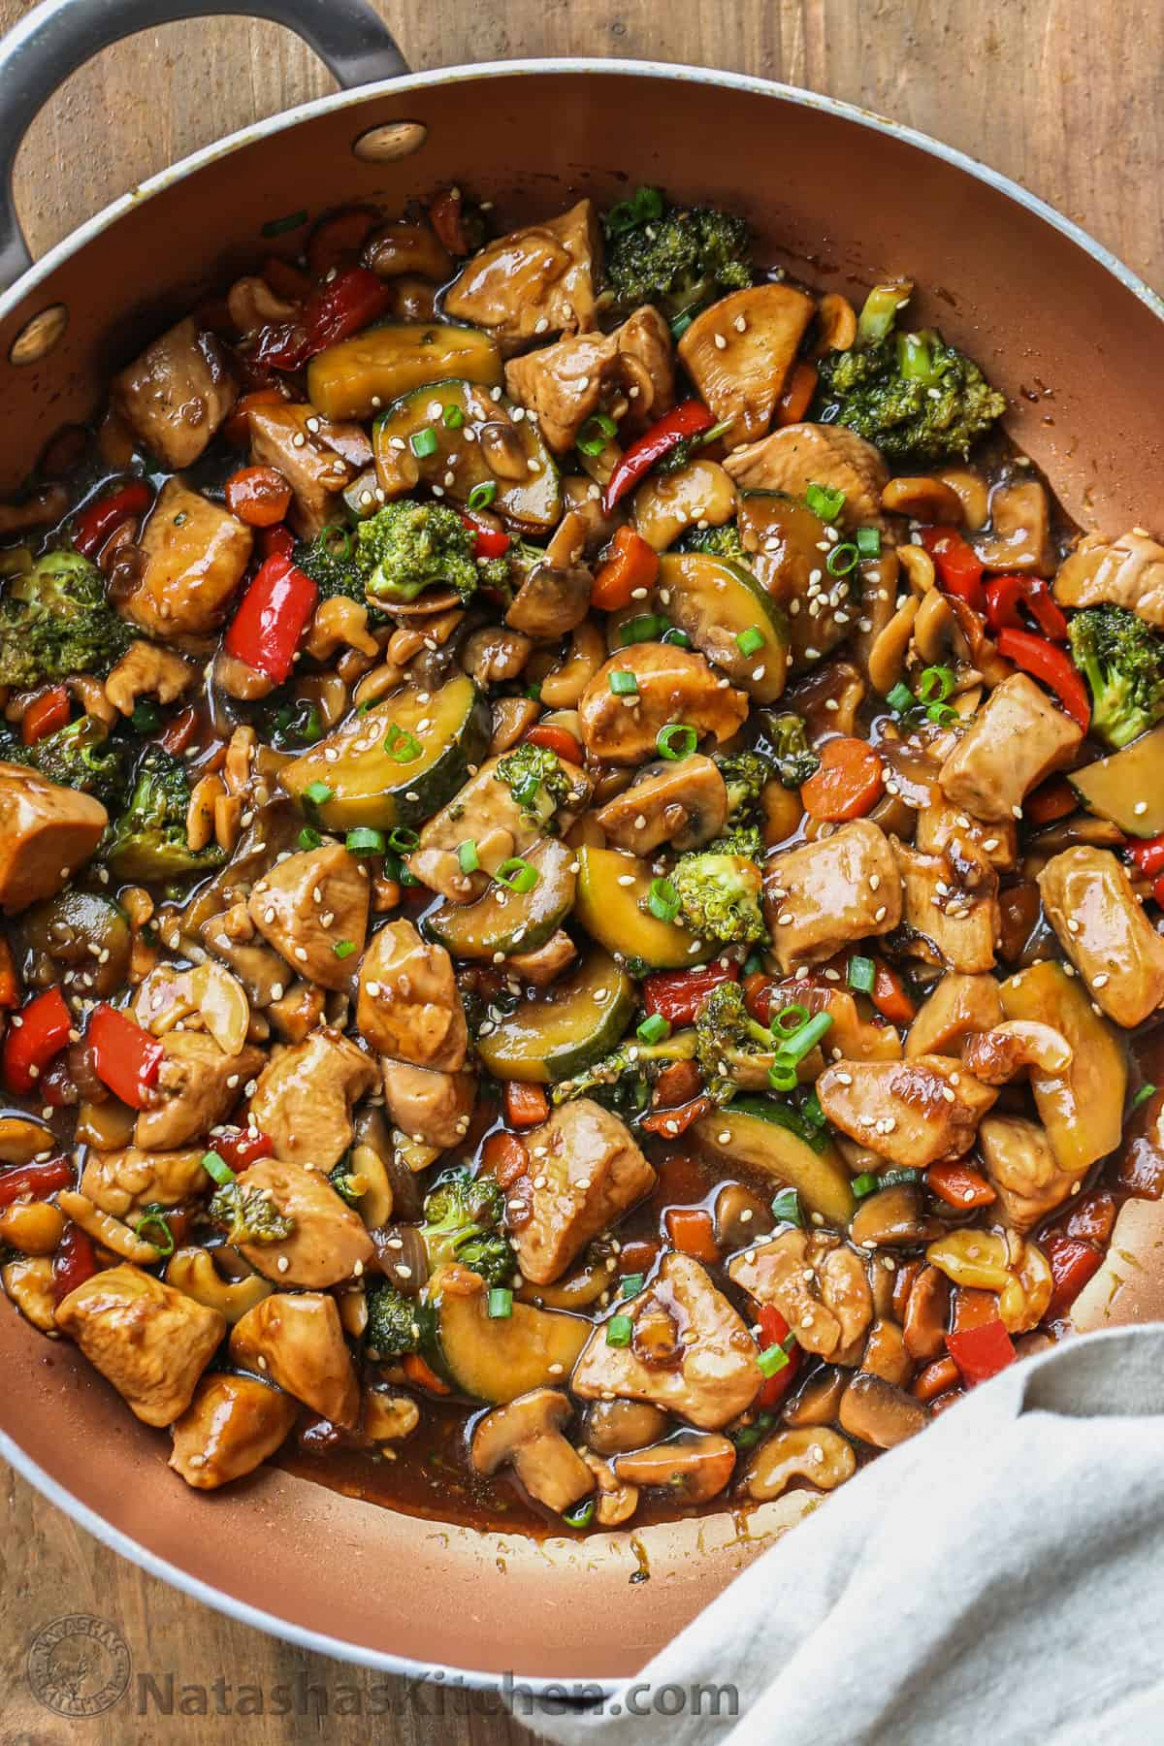 Chicken Stir Fry Recipe - what are the best dinner recipes